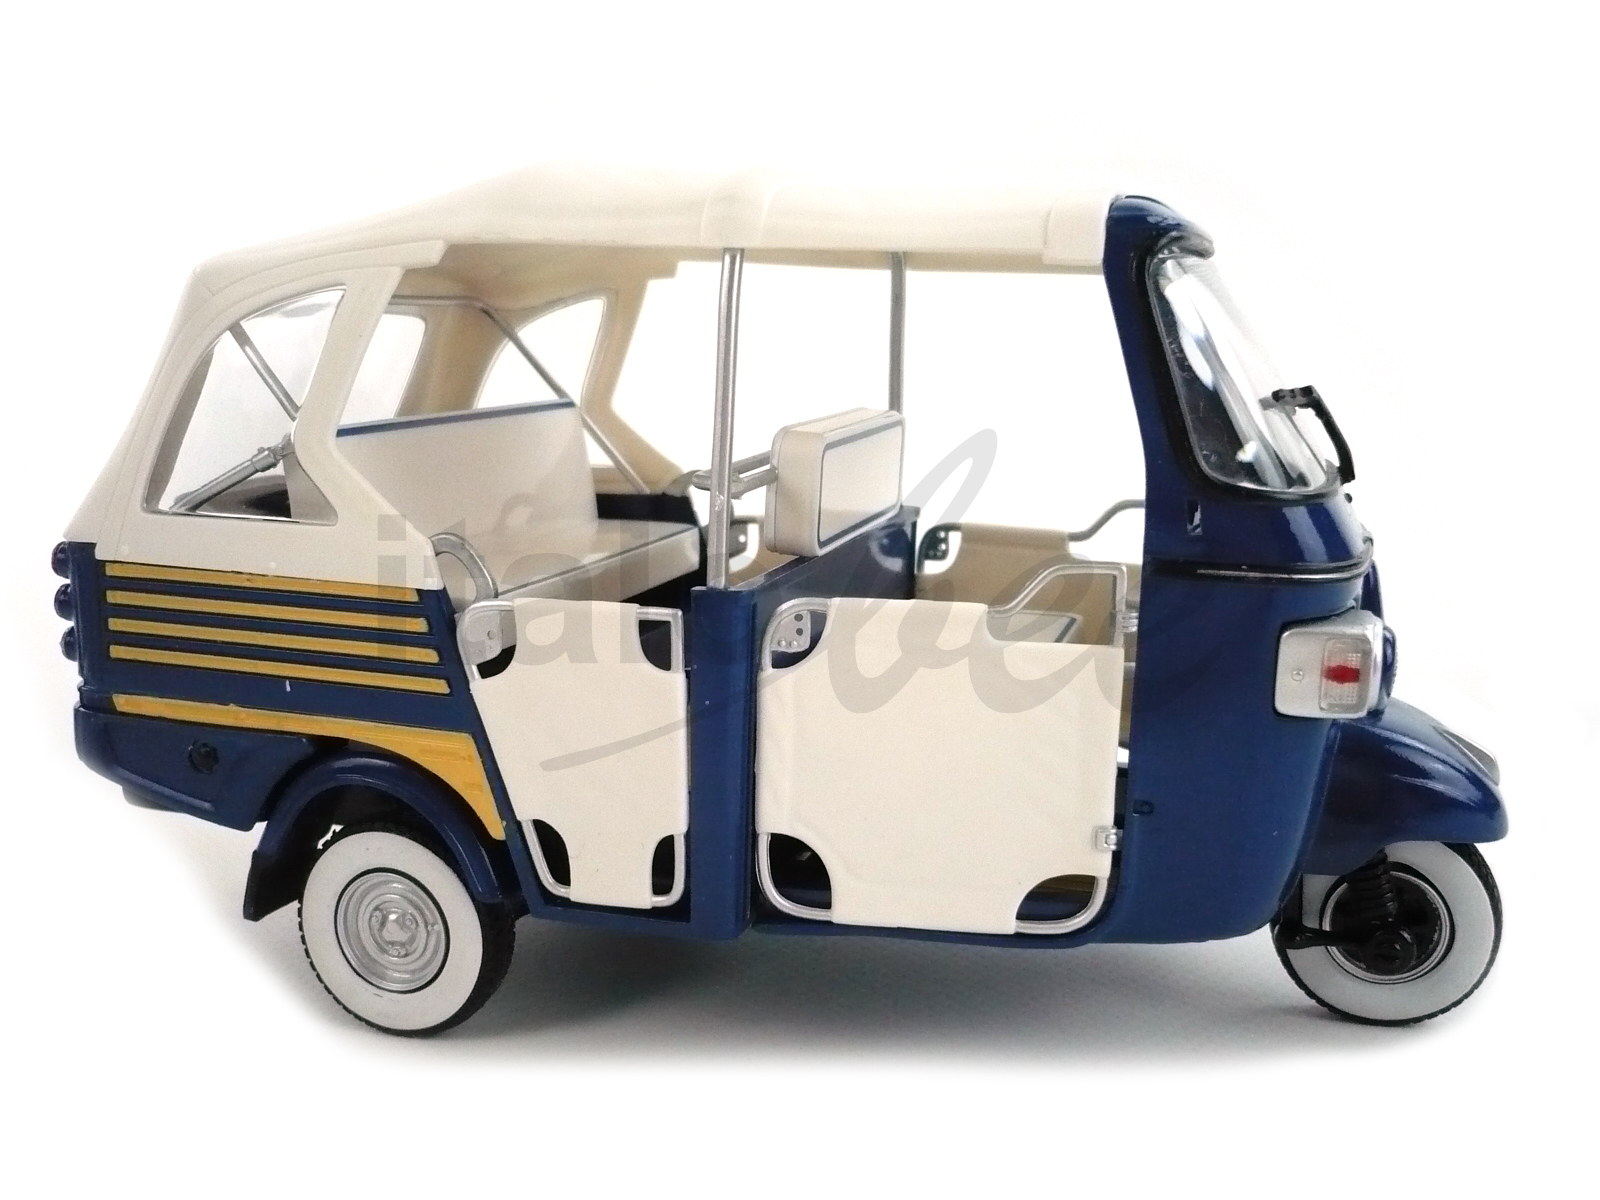 modell 1 18 piaggio ape calessino blau sammlermodelle. Black Bedroom Furniture Sets. Home Design Ideas